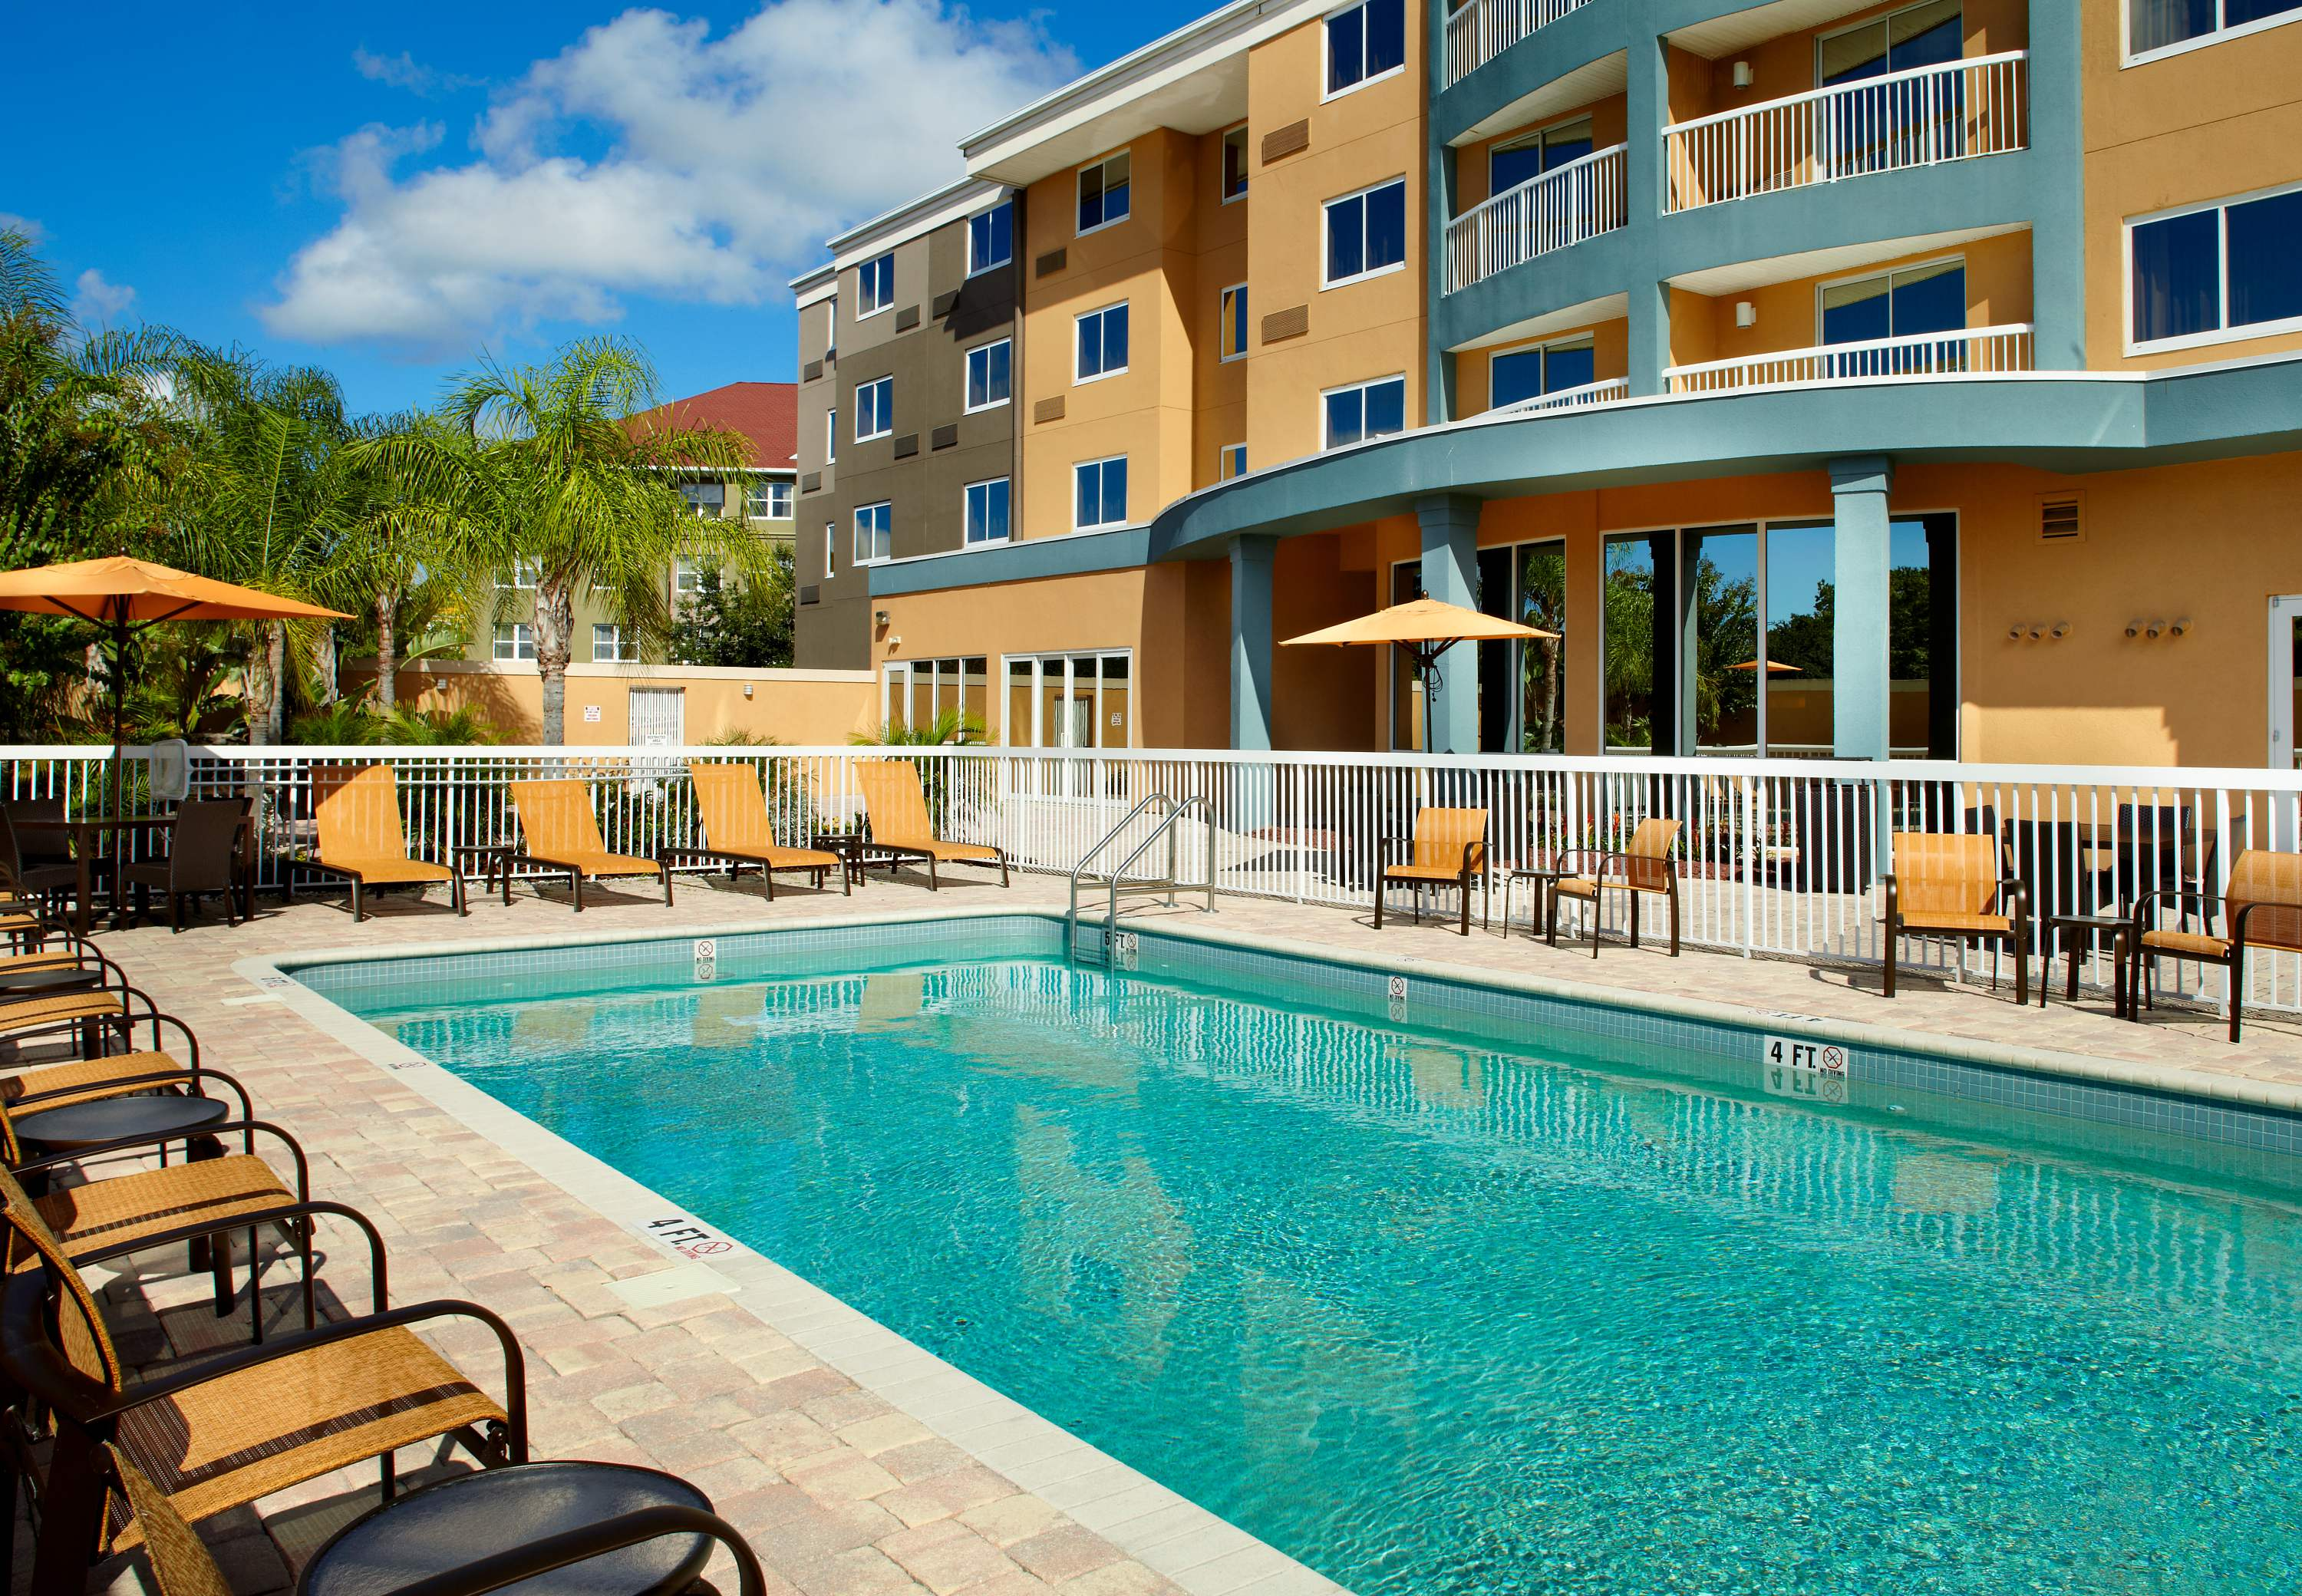 Courtyard by Marriott Tampa Oldsmar image 14